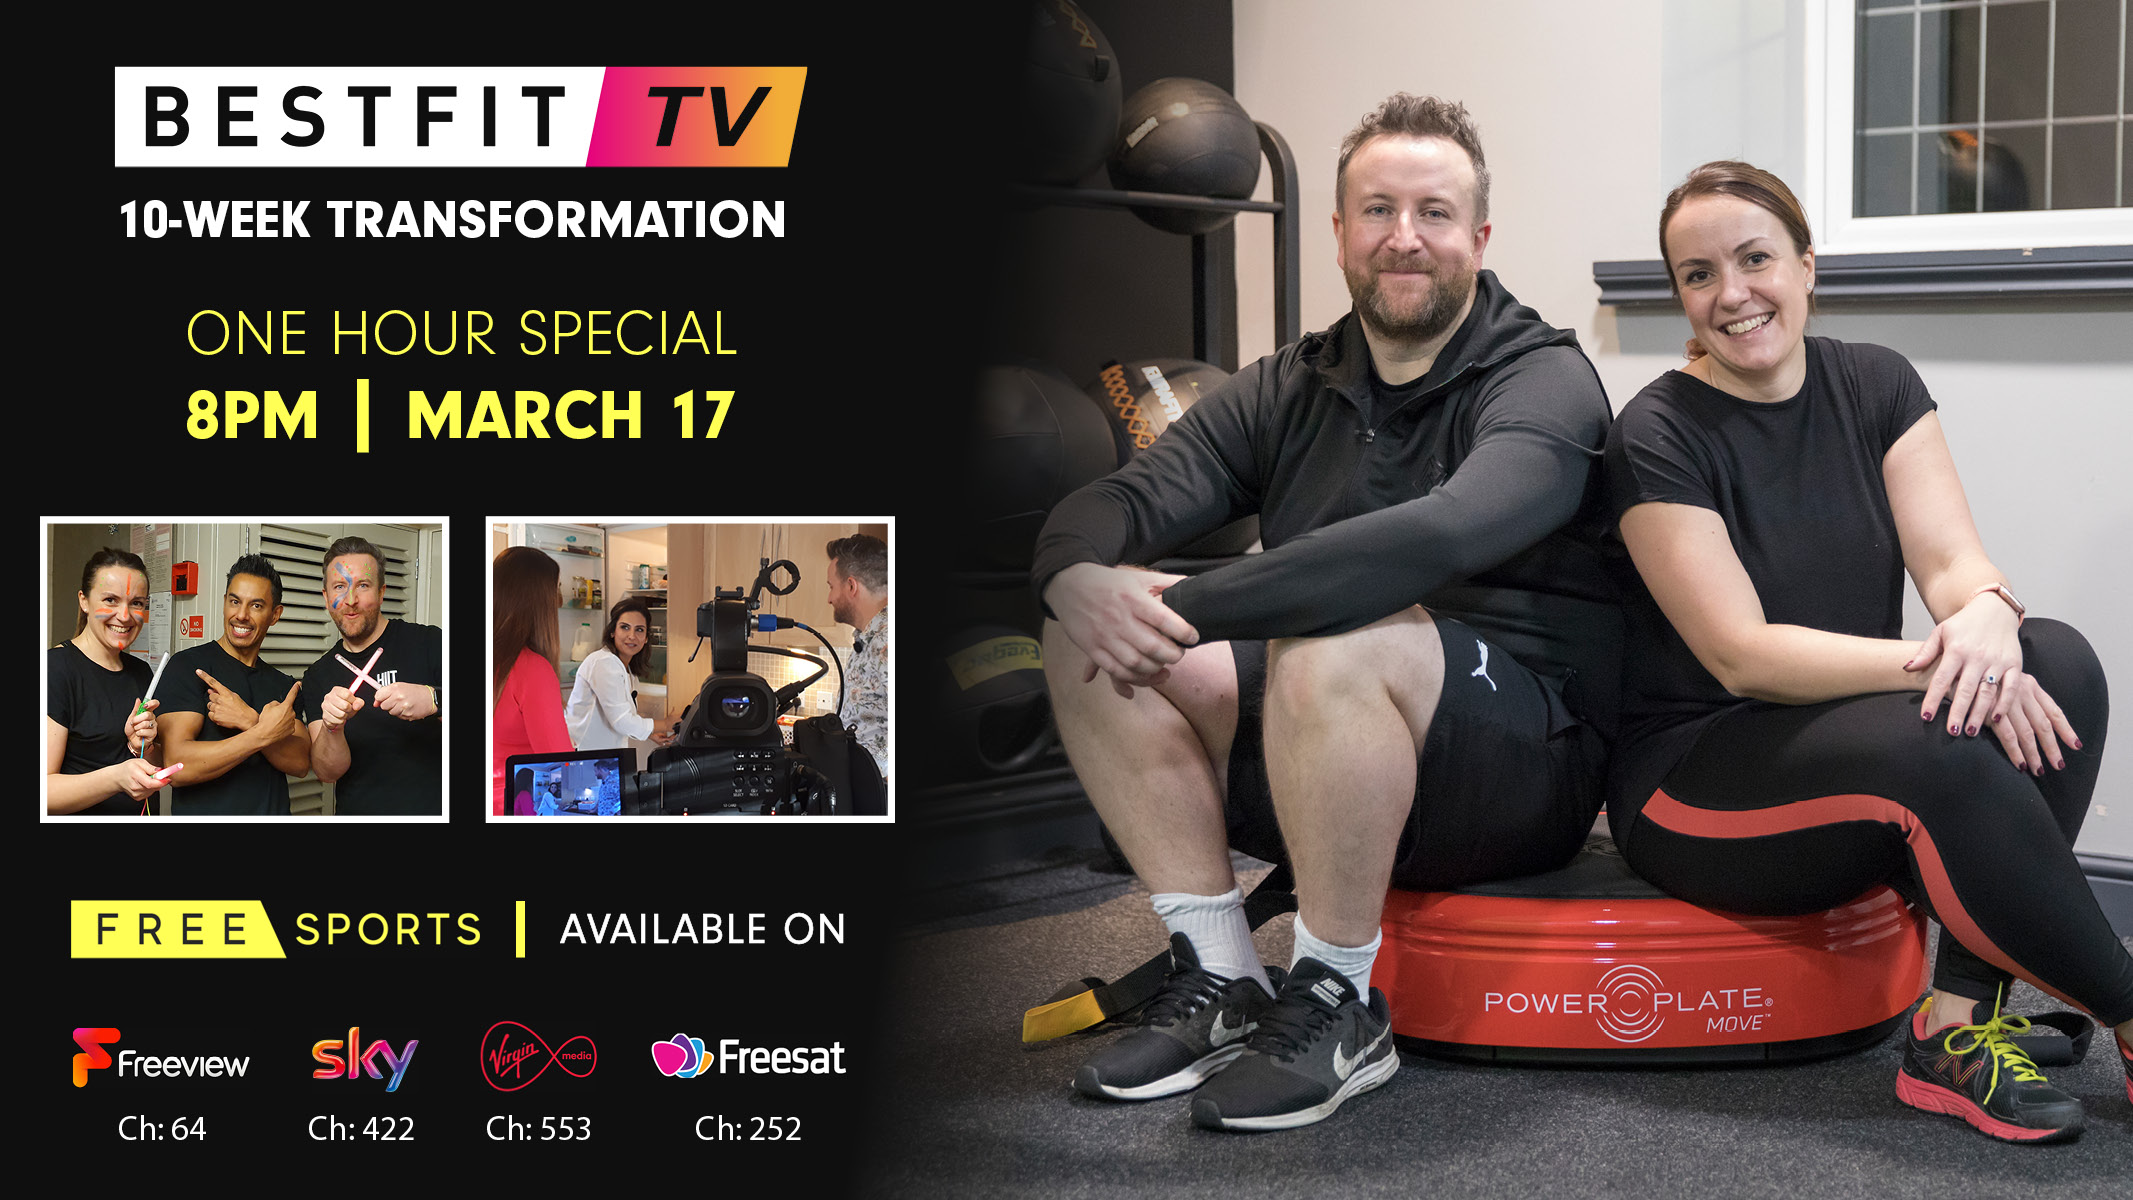 BESTFIT TV 10-week couple transformation tv show on freesports sky virgin freeview